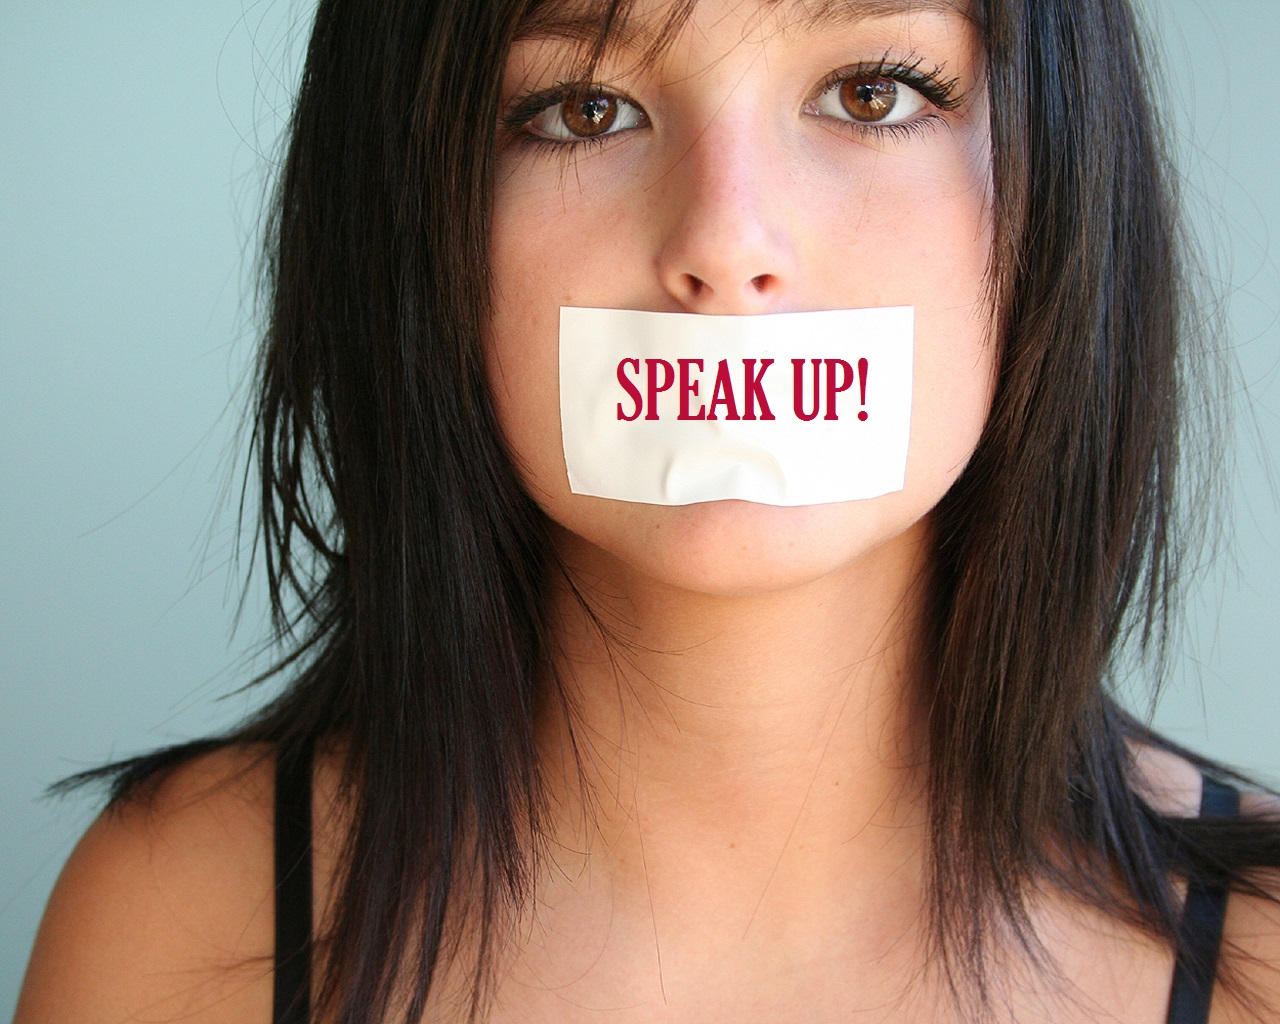 Girl With Mouth Taped Shut Wallpaper Silence Challengeschanges